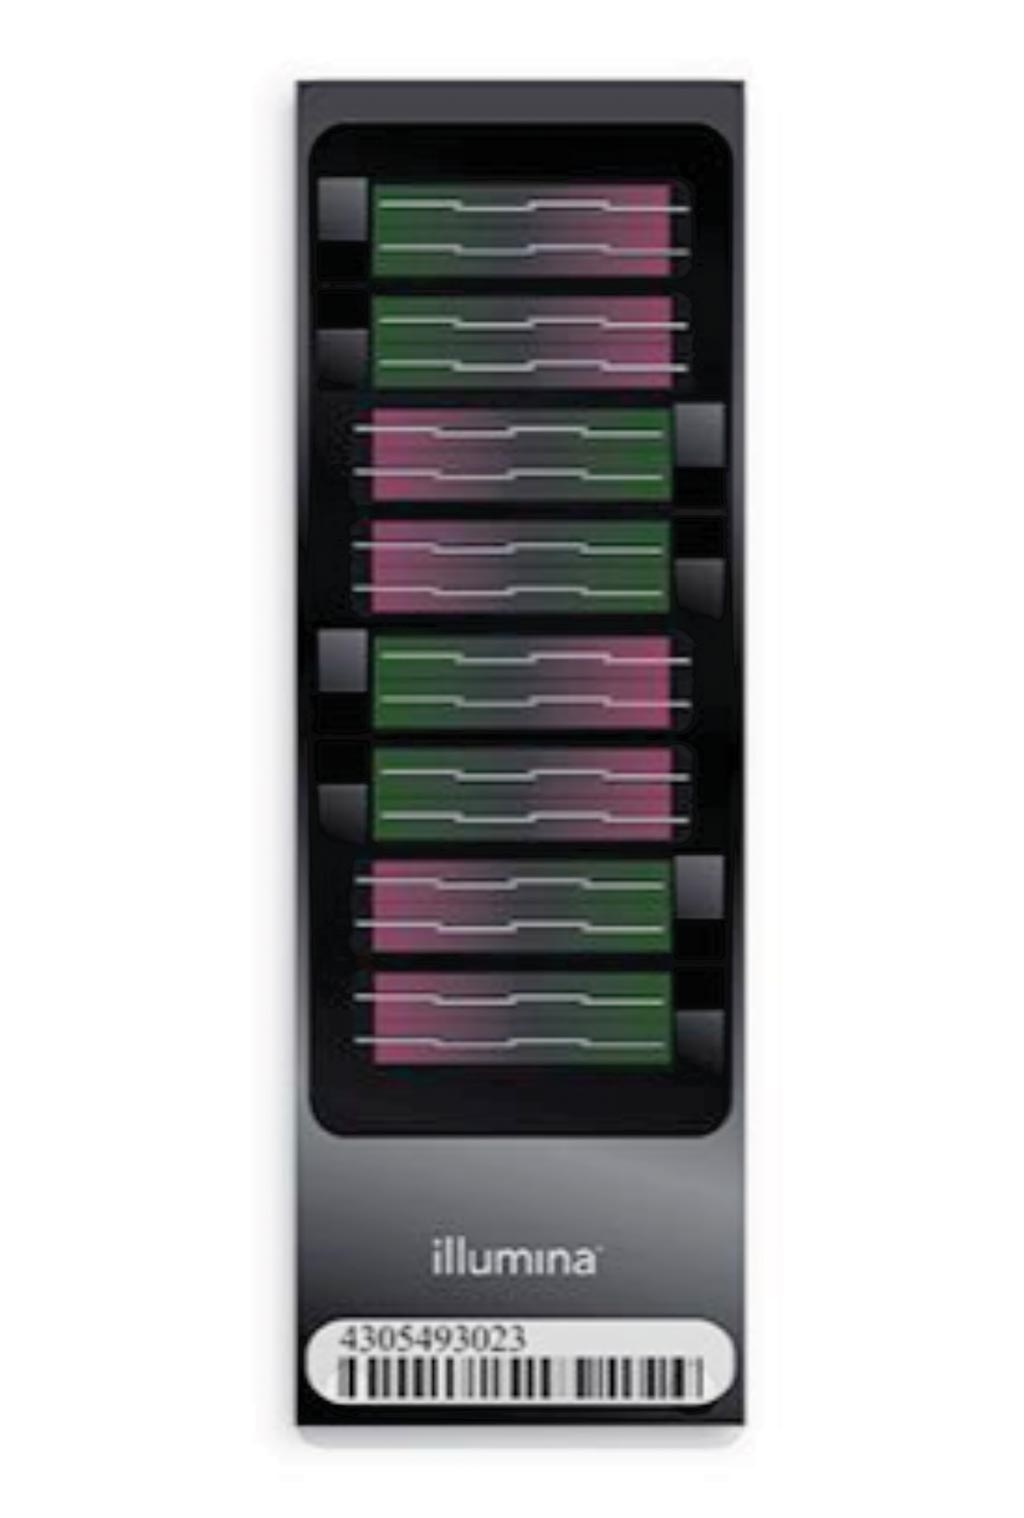 Image: The Infinium Human Methylation 450K BeadChip: robust methylation profiling microarray with extensive coverage of CpG islands, genes, and enhancers; used for epigenome-wide association studies (Photo courtesy of Illumina).